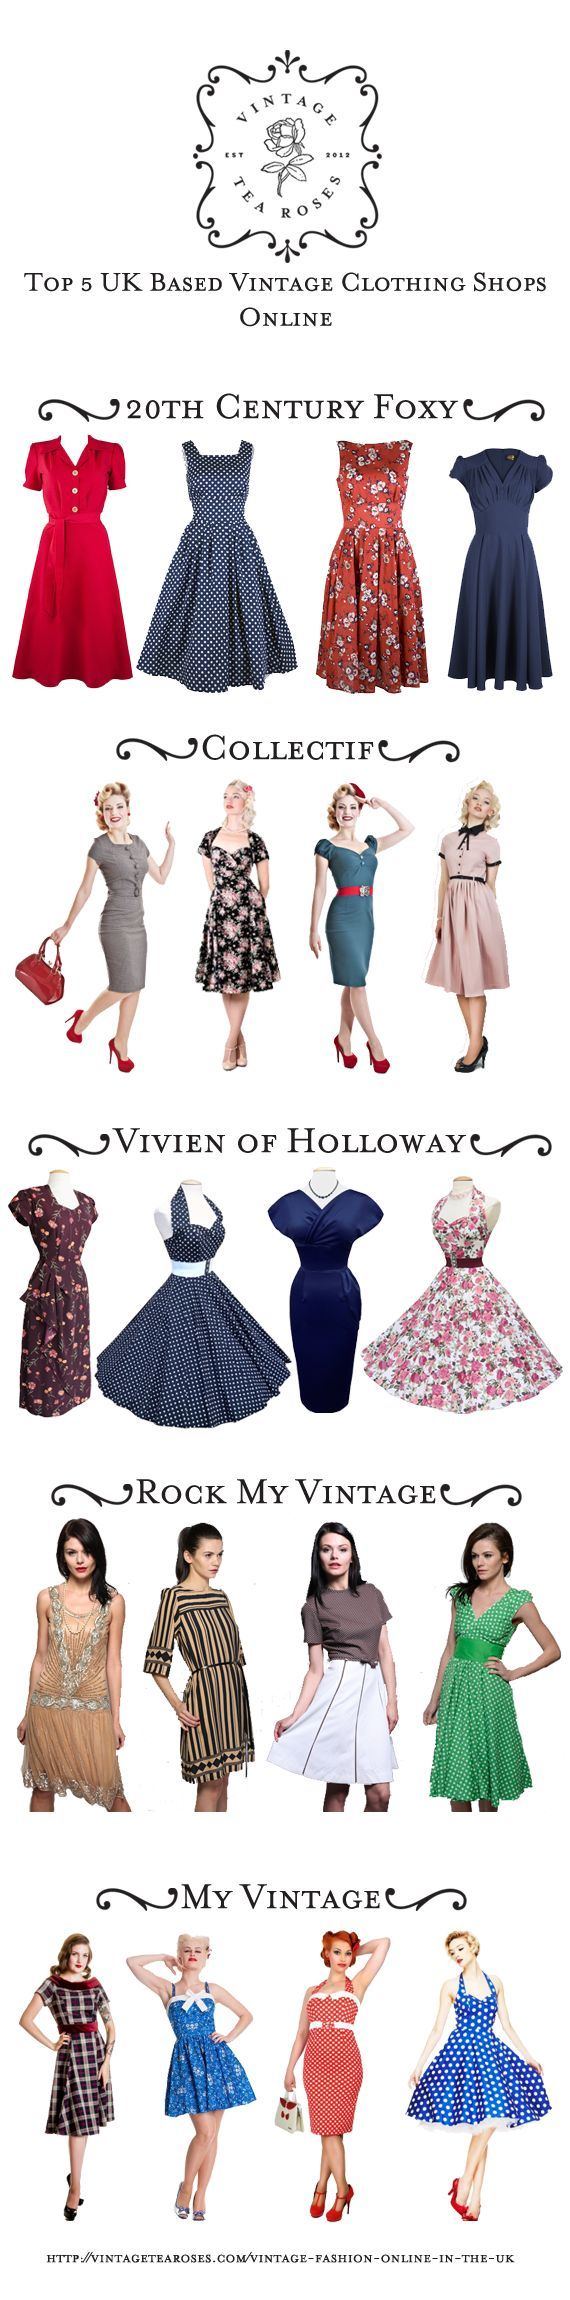 Top Vintage Clothing Shops Online In The Uk Http Vintagetearoses Com Vintage Fashion Online In Th Vintage Clothes Shop Vintage Fashion Online Vintage Outfits